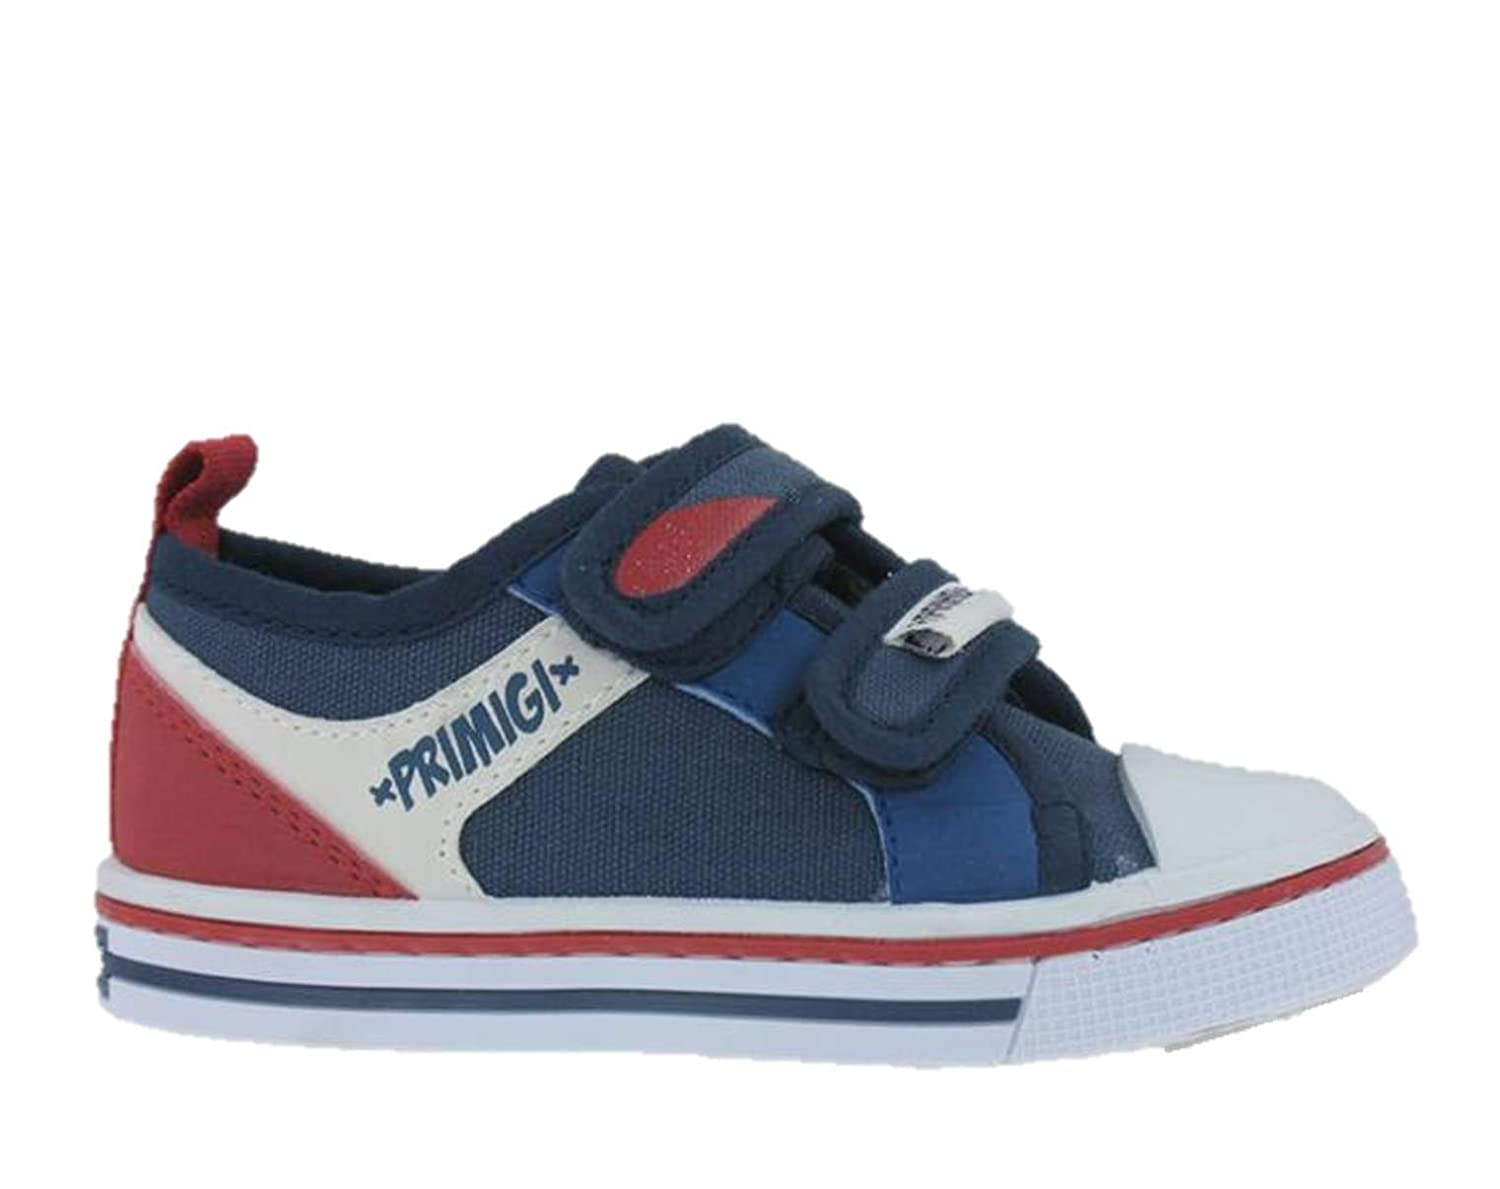 Primigi 3445455 Sneaker Shoes Canvas Infant First Steps Made in Italy